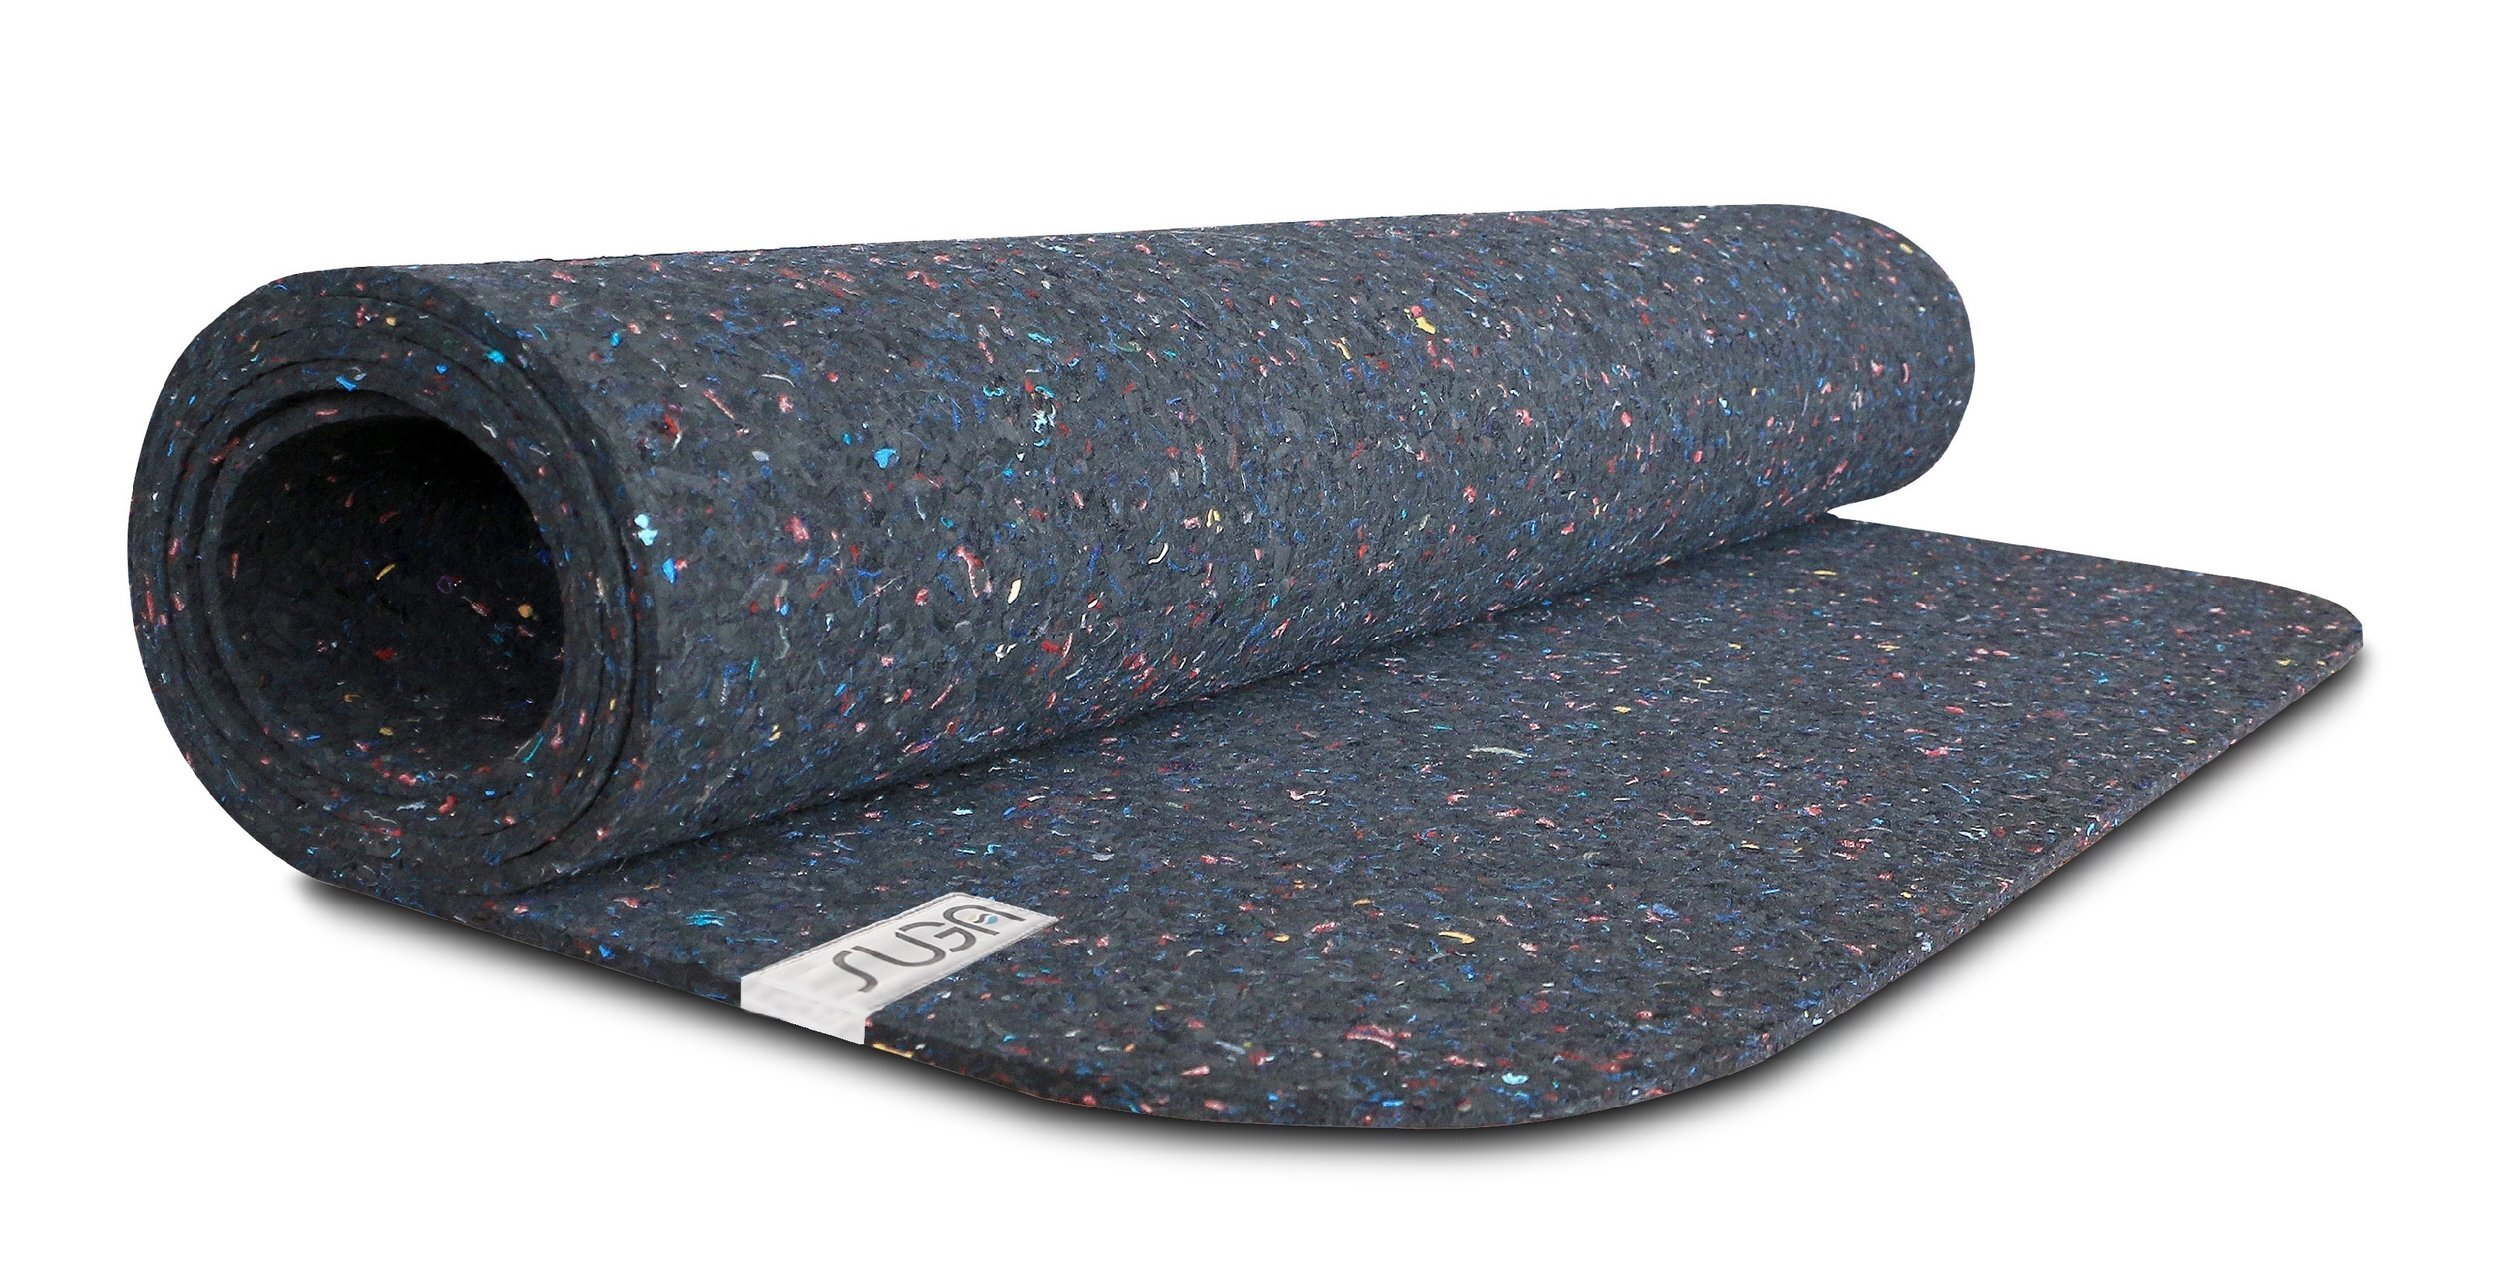 Suga: Sugamat   Suga collects used wetsuits from around the US and Canada and reuses the material to create a 100% recycled plastic yoga mat that is also fully recyclable. You can purchase this yoga mat for life, and they'll fix and replace your mat whenever you need it!   https://www.sugamats.com/buy/sugamatc2g